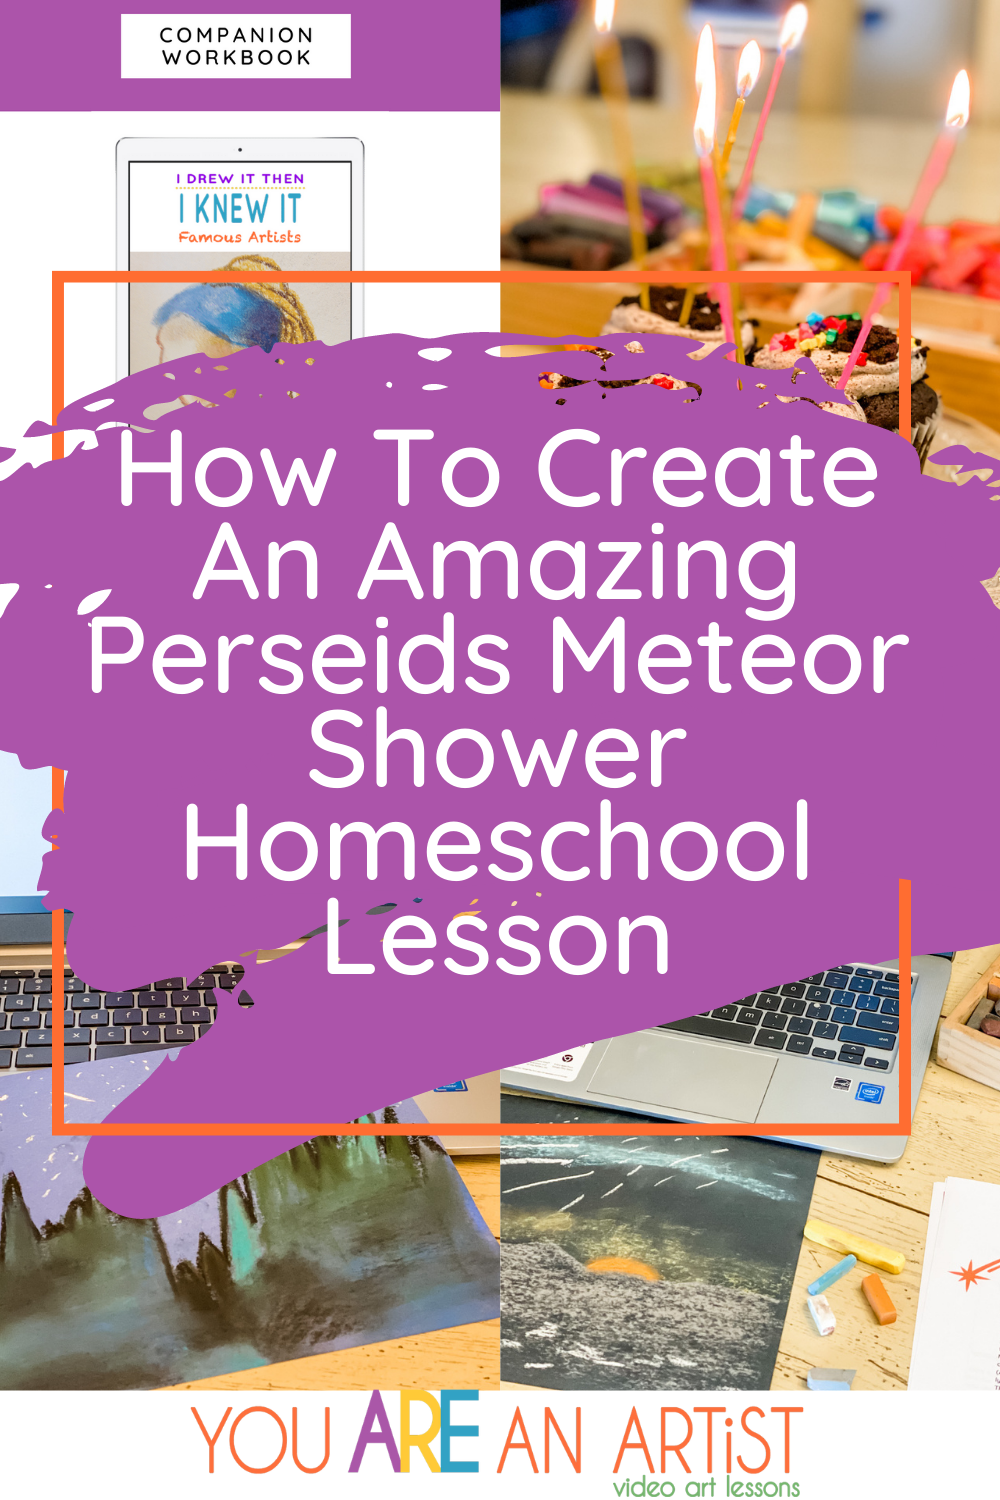 A Perseids Meteor Shower Homeschool Lesson is perfect for summer! So many ideas here to help you make a memorable learning experience at home! #perseids #meteorshower #homeschool #homeschoollessonplans